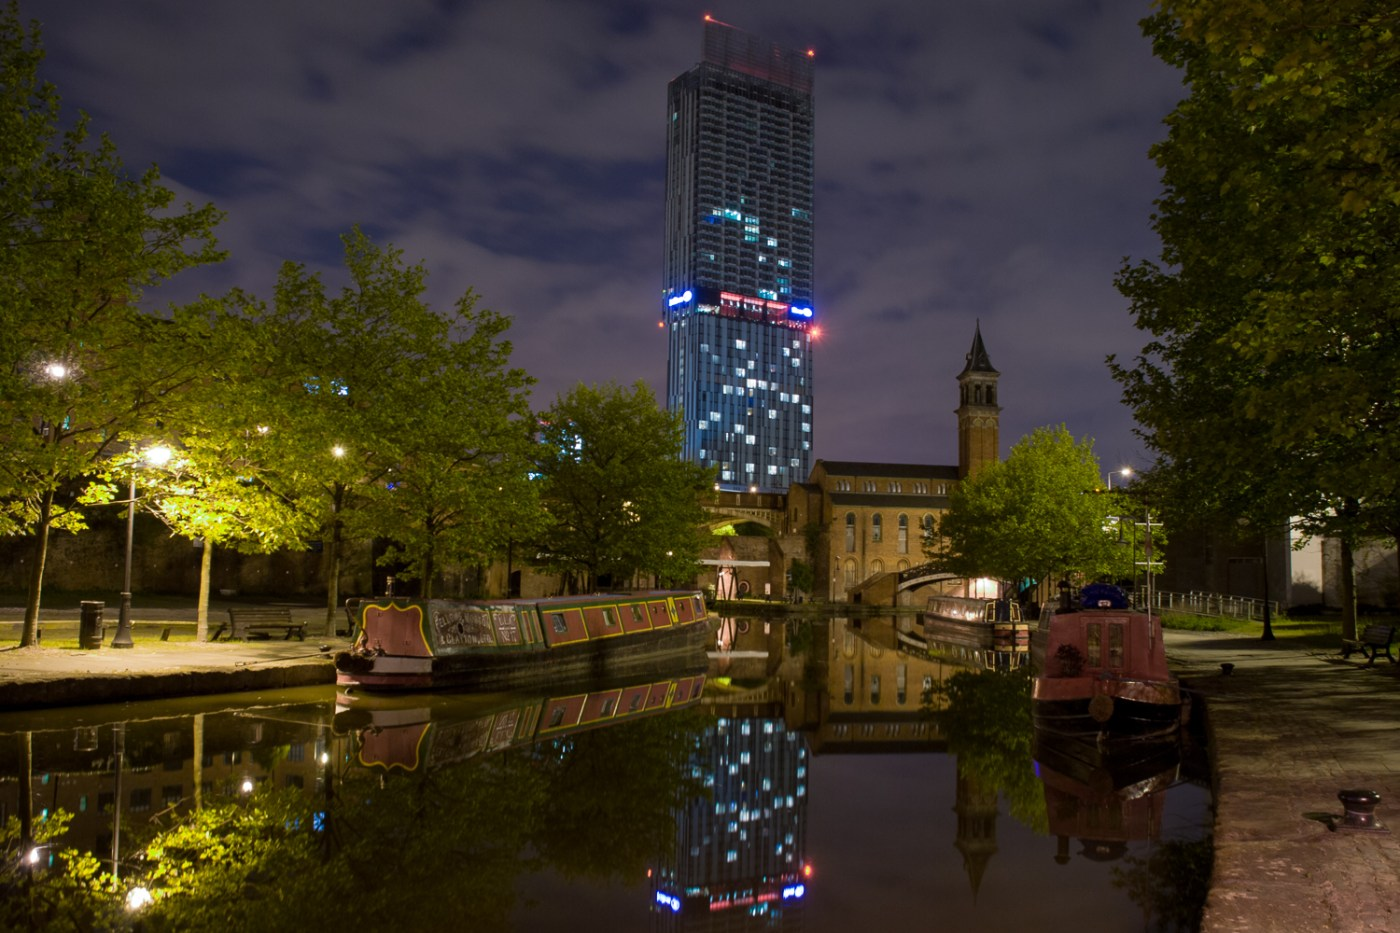 Castlefield canal boats at night